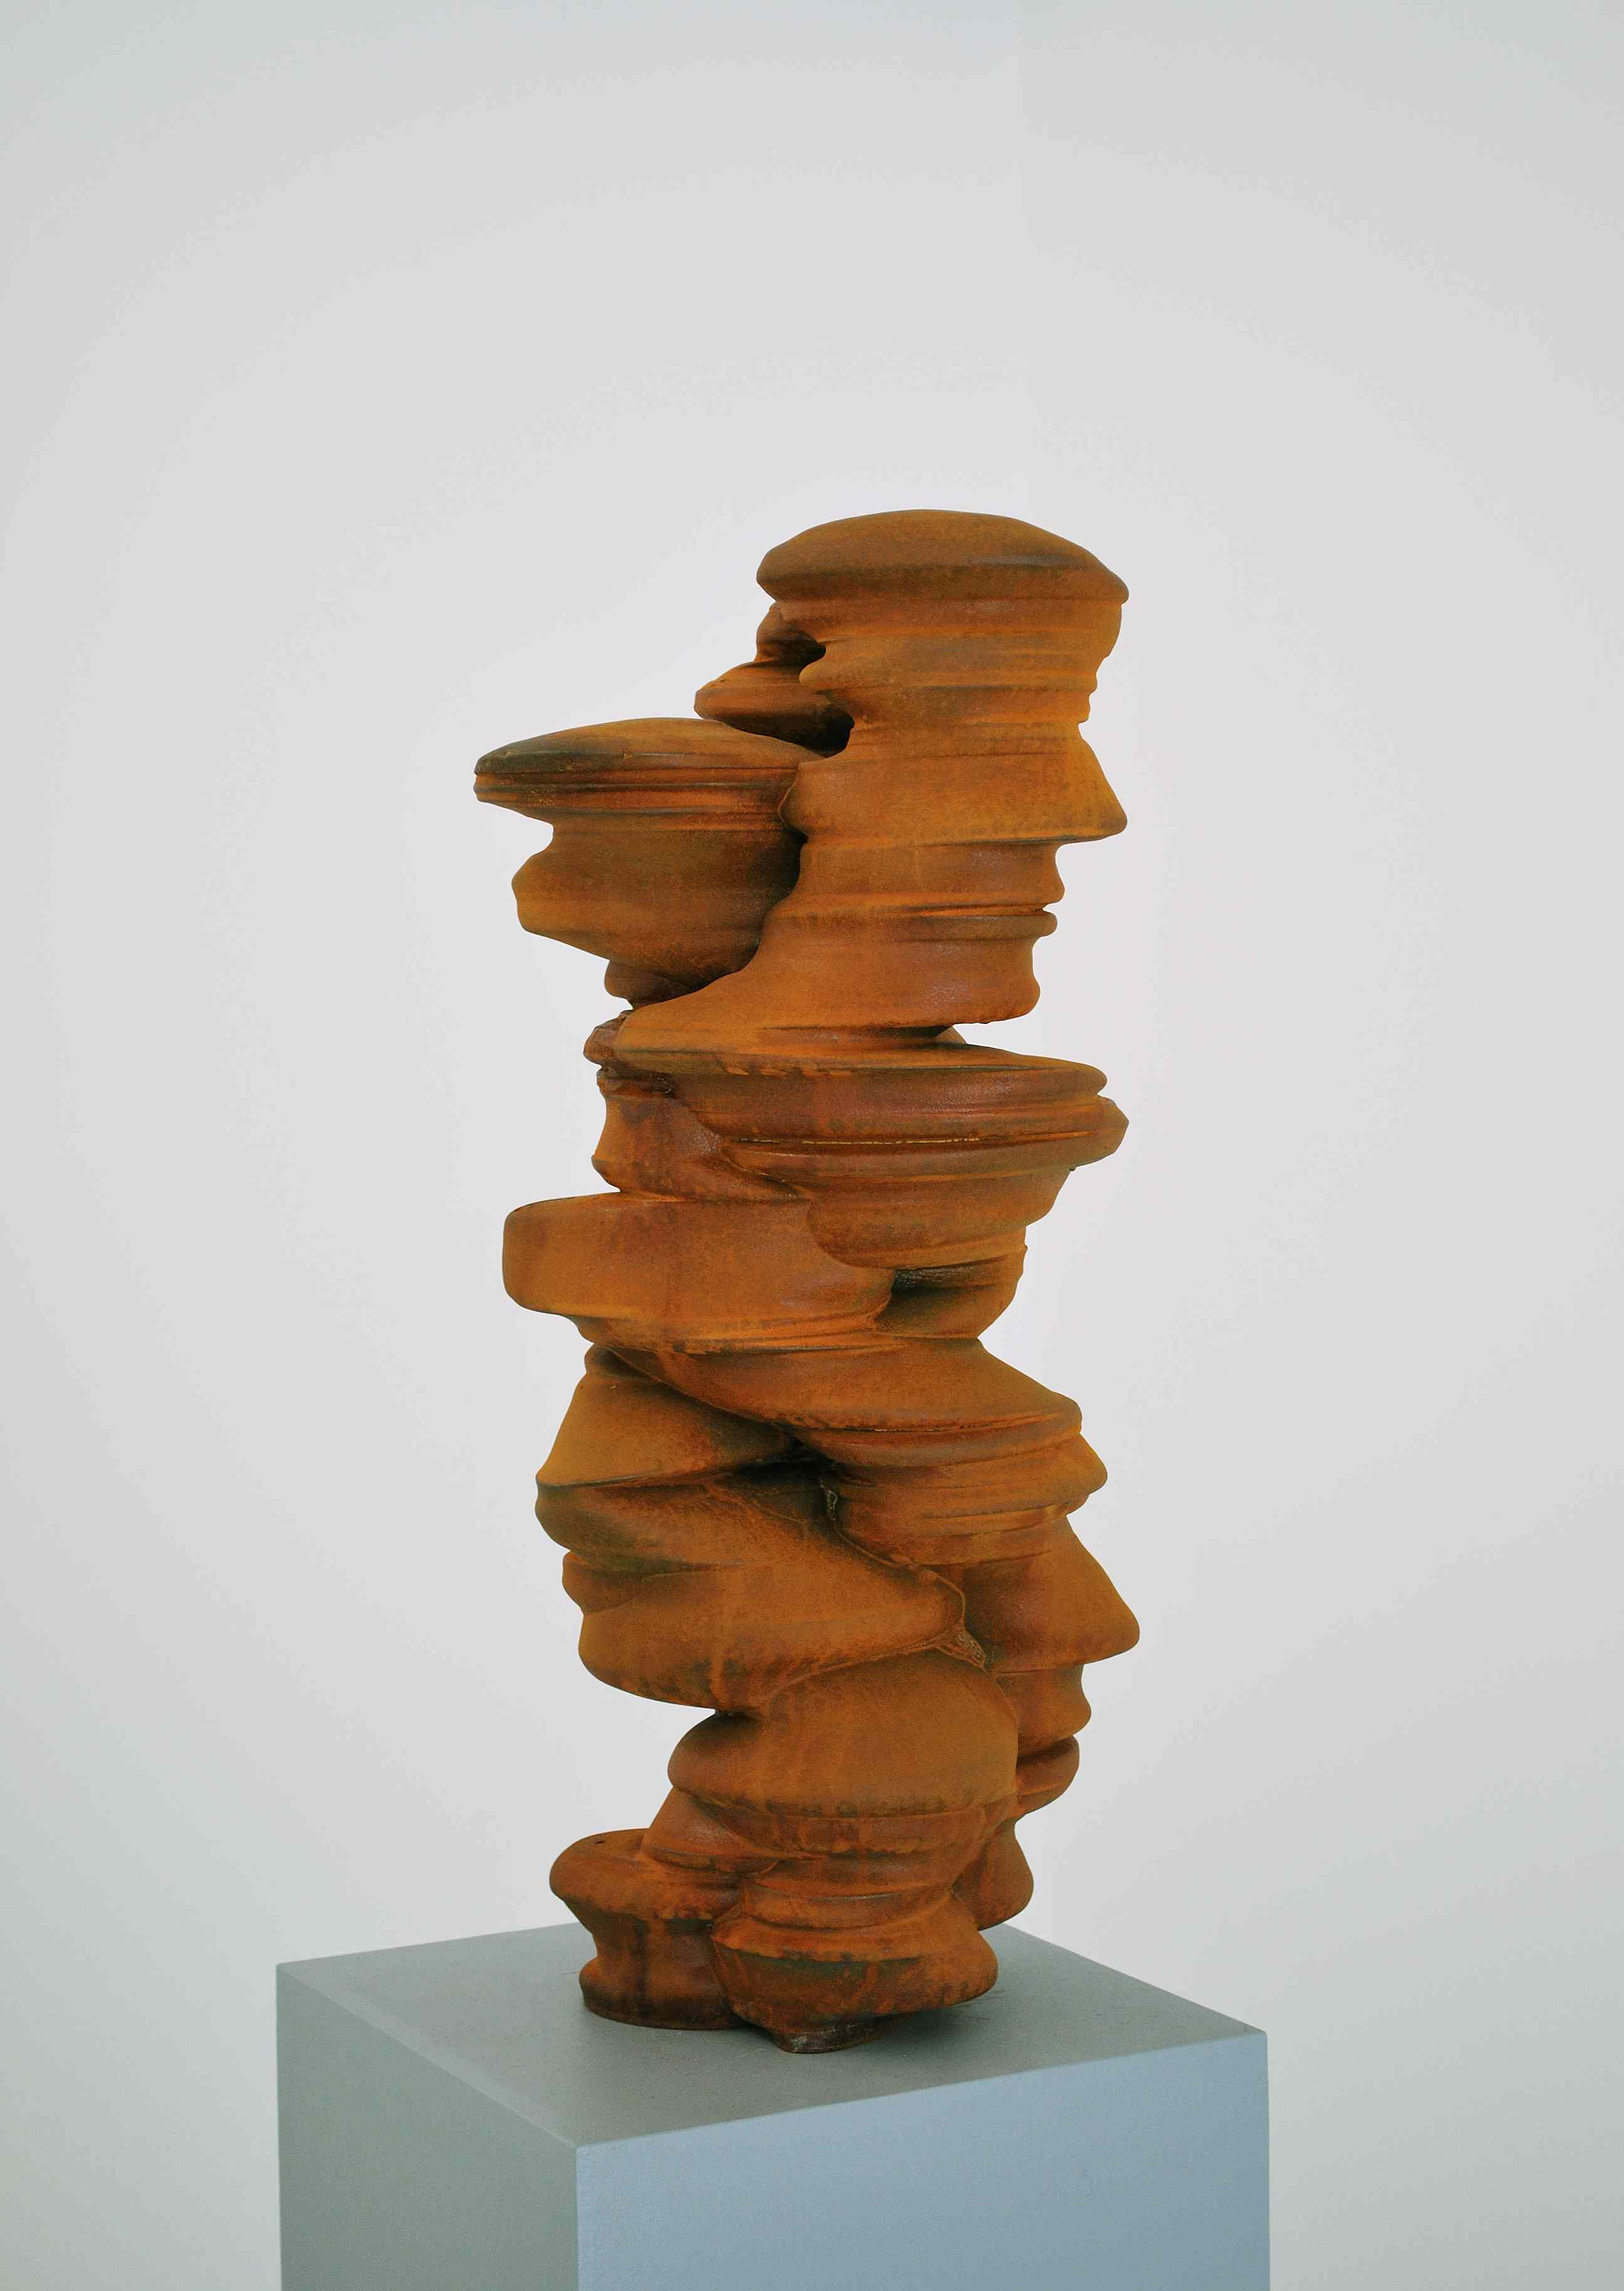 Tony Cragg - Different points of view - 2011